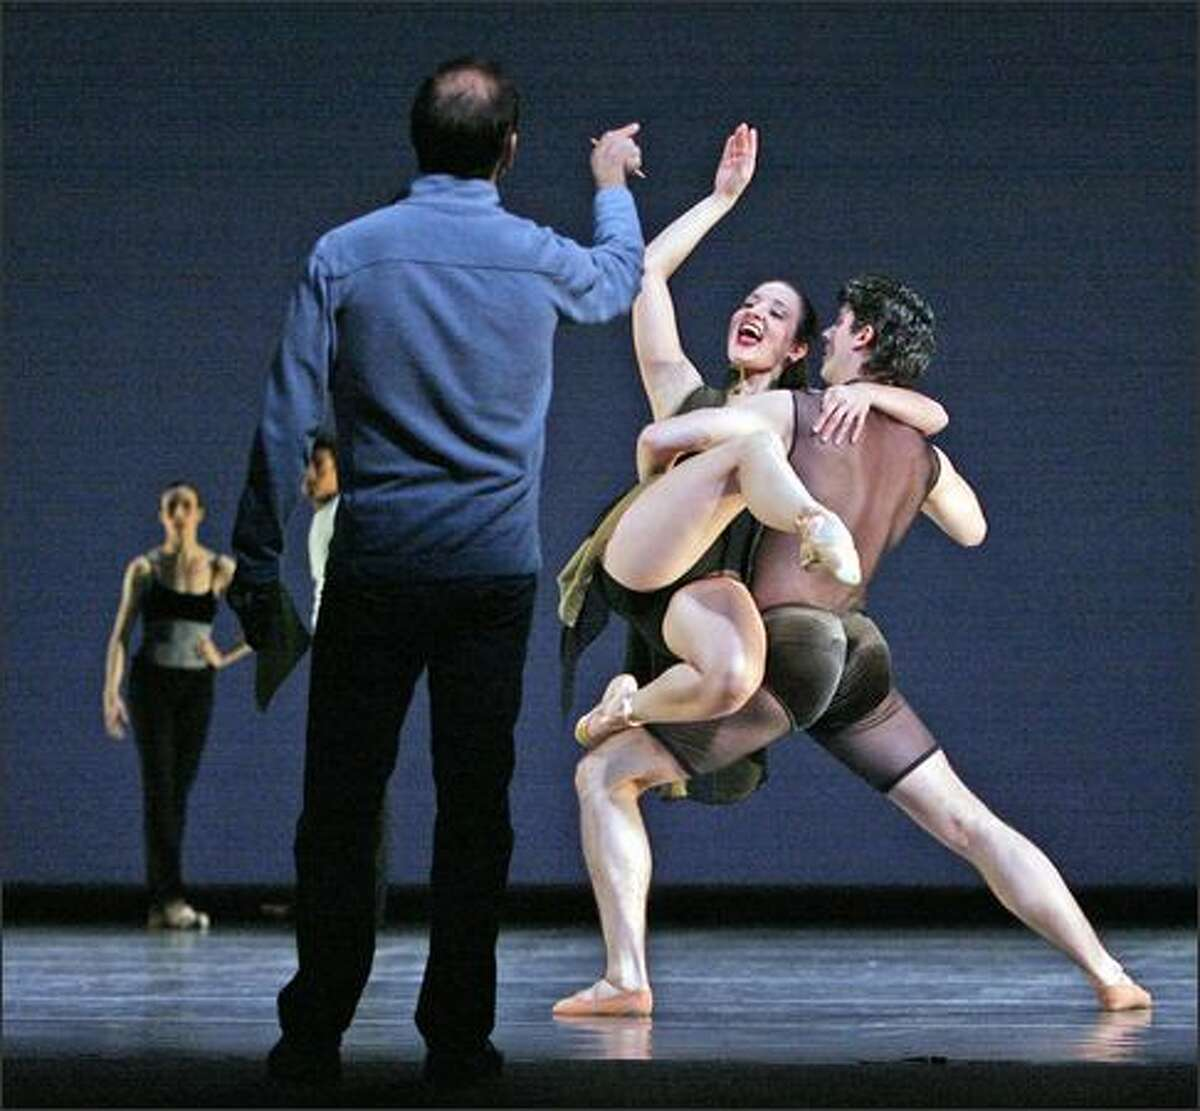 Sense of Doubt's choreographer Paul Gibson, with back to camera, laughs with a dancer after they get a dance move done correctly at the end of the rehersal. PNB dancers perform Paul Gibson's Sense of Doubt in the Pacific Northwest Ballet DIRECTOR'S CHOICE presentation at McCaw Hall. DIRECTOR'S CHOICE performances run March 13-22, 2008.